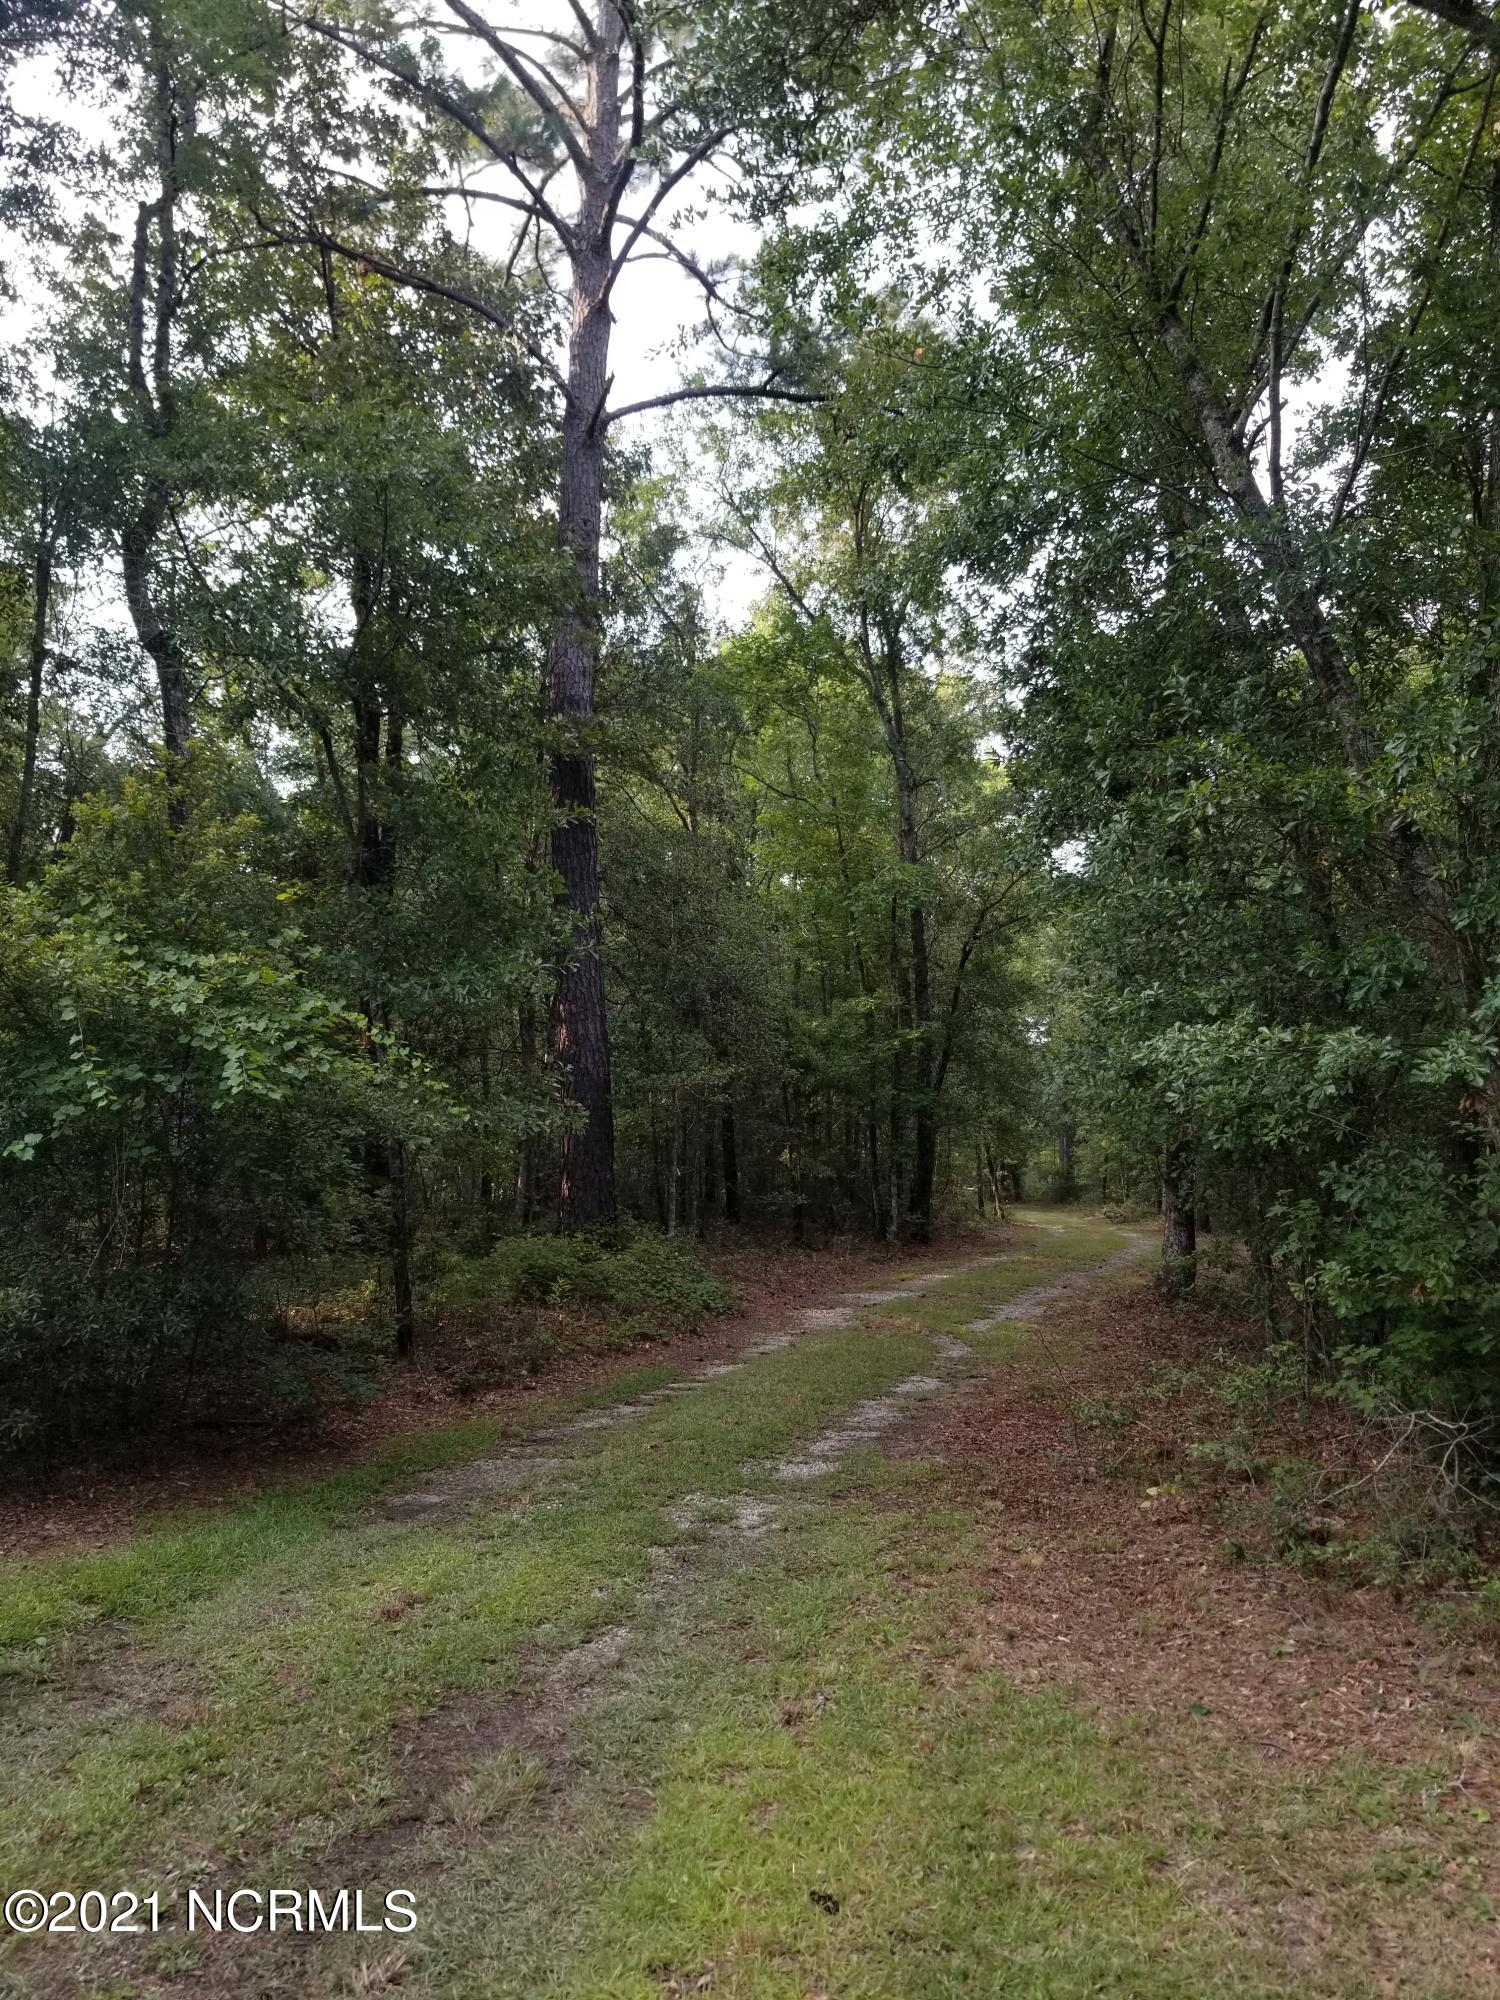 10 Acre Beautiful, Natural & Secluded Creek Front Property with Direct Access to the White Oak River and within 5 miles to the Intracoastal Waterway. There is approximately 300 feet of Pier built over marshland which leads to an ample sized dock. It's all waiting for you to come relax, hunt, fish, farm, crab and watch the sunsets. Every 5th section of the pier has reinforced stabilization with stainless steel aviation cable. The Dock Size is 12x24 and has conduit for electricity run to the end of the dock and is also reinforced with stainless steel aviation cable. The property has a well with a pump house and provisions for water out of the pump house for future buildings on the property. There is septic in place for a 5 bedroom home, electric, and phone lines installed. There are actually 3 driveways into the property as well. This is a perfect spot to build your dream home! The River Creek subdivision only has five 10 acre lots and cannot be subdivided. Horses and hens are allowed. All lots border  water access and water views. The water depth is approximately 3 feet at high tide and 1 foot at low tide. This secluded location is within 6.5 miles or less to local golf courses, restaurants, marina, wildlife viewing area, family entertainment, and award winning schools. Emerald Isle, Cedar Point, Swansboro, Stella & Morehead City are just short distances away. ***The property is in White Oak Township approximately 6.5 miles from intersection hwy 24 & 58 in Cedar Point but has a Swansboro Address***